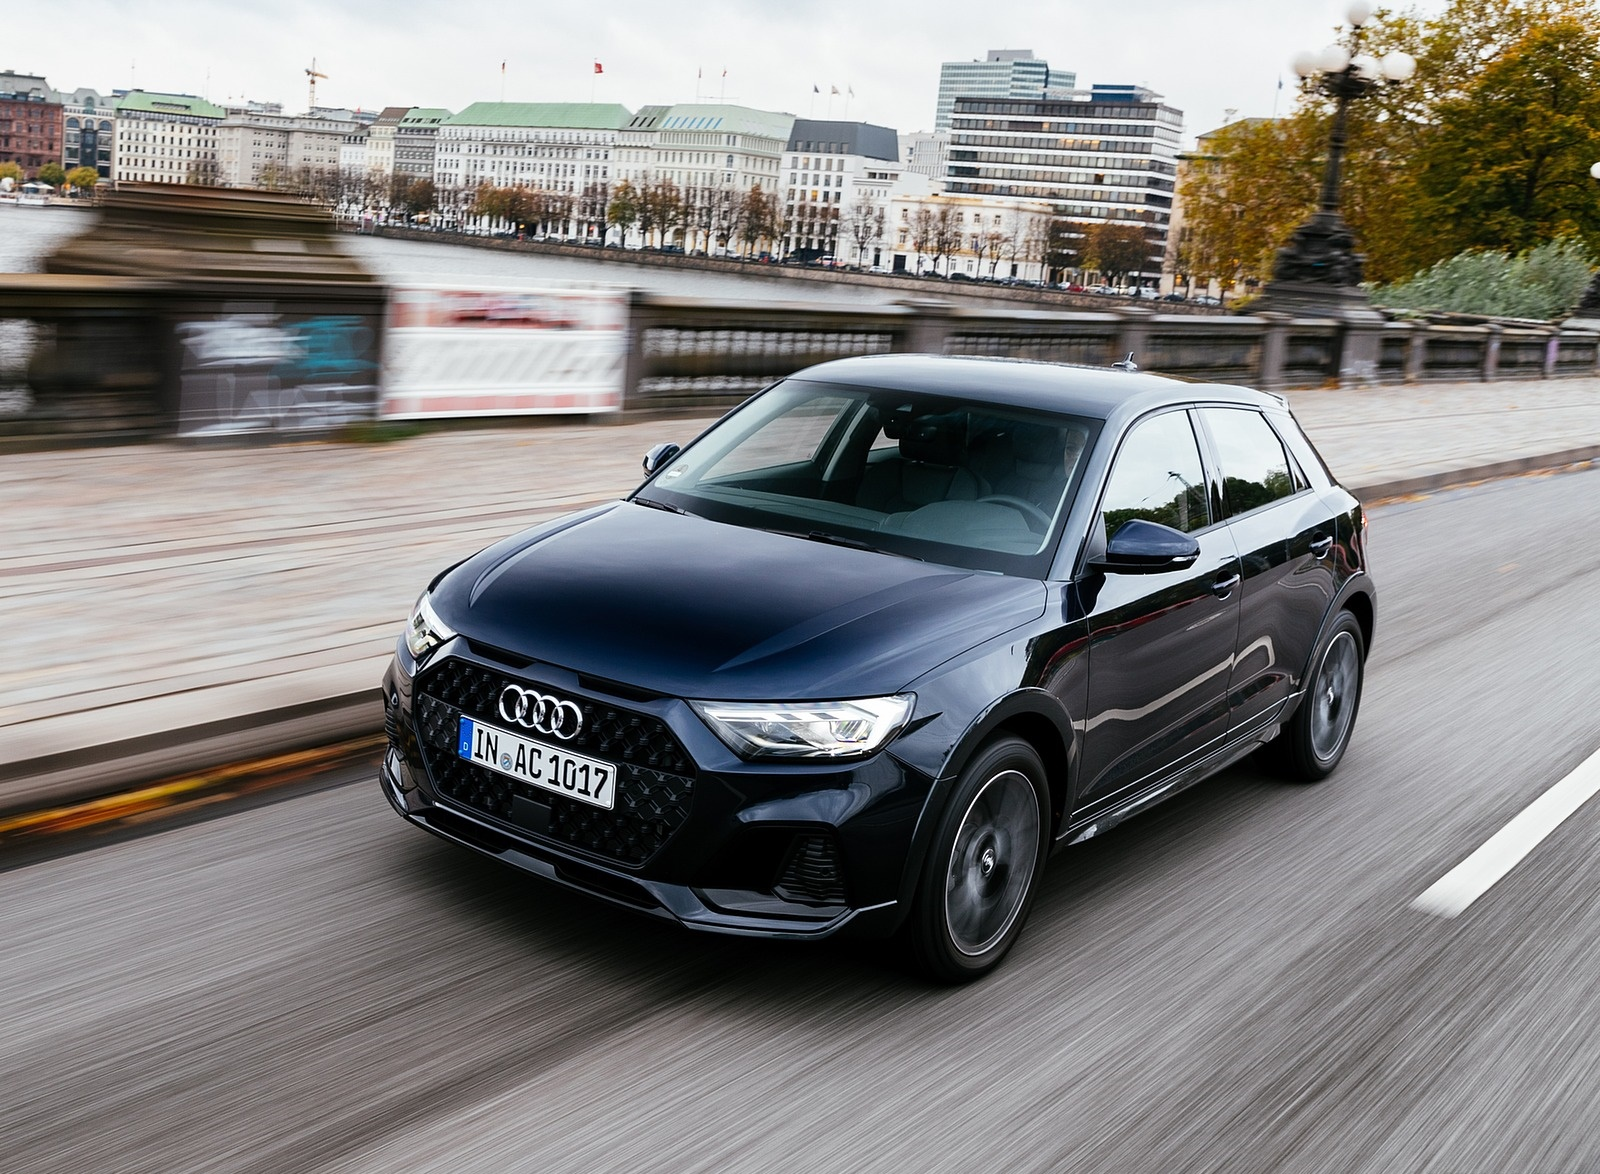 2020 Audi A1 Citycarver (Color: Firmament Blue) Front Three-Quarter Wallpapers (11)